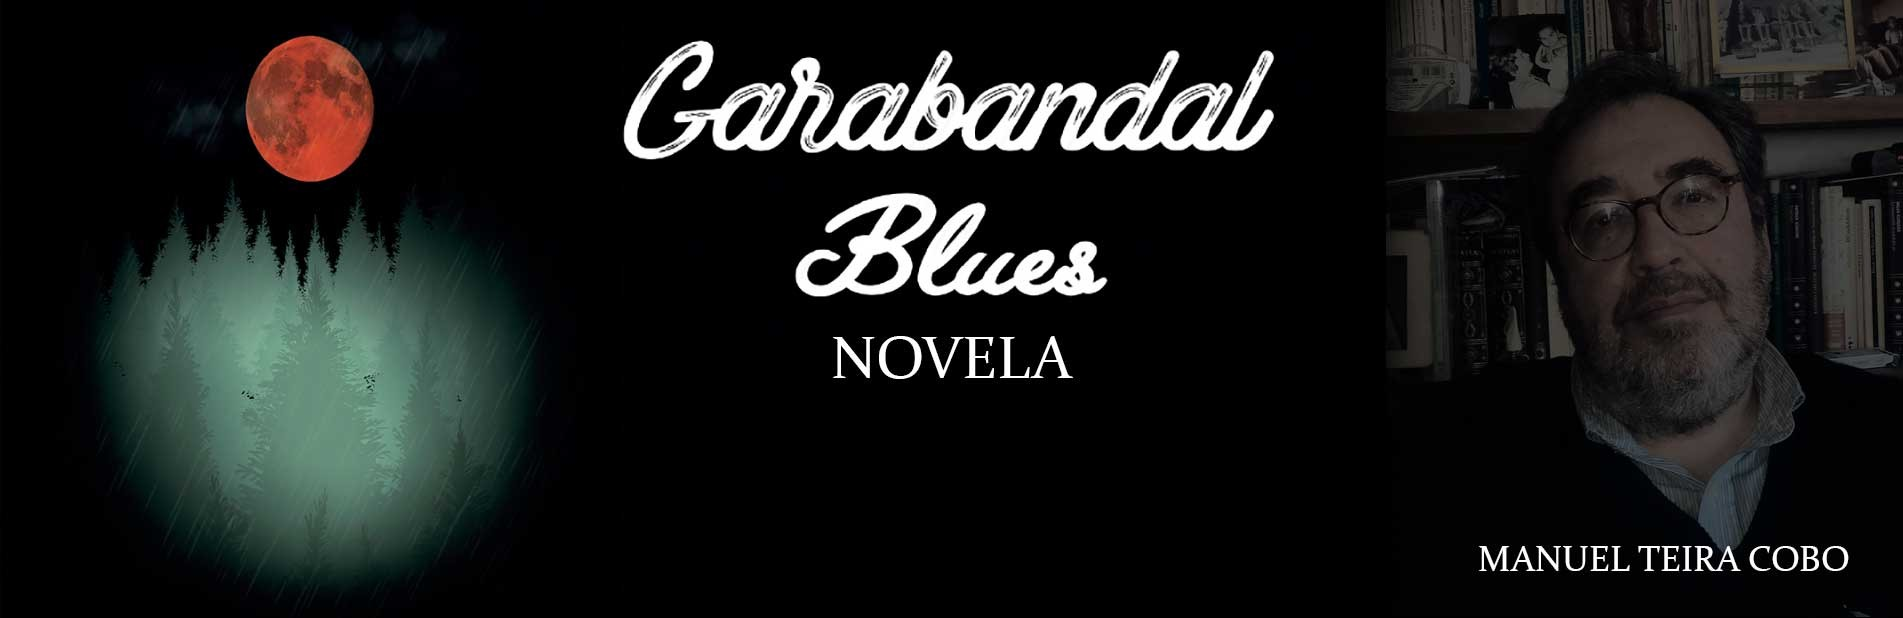 GARABANDAL BLUES